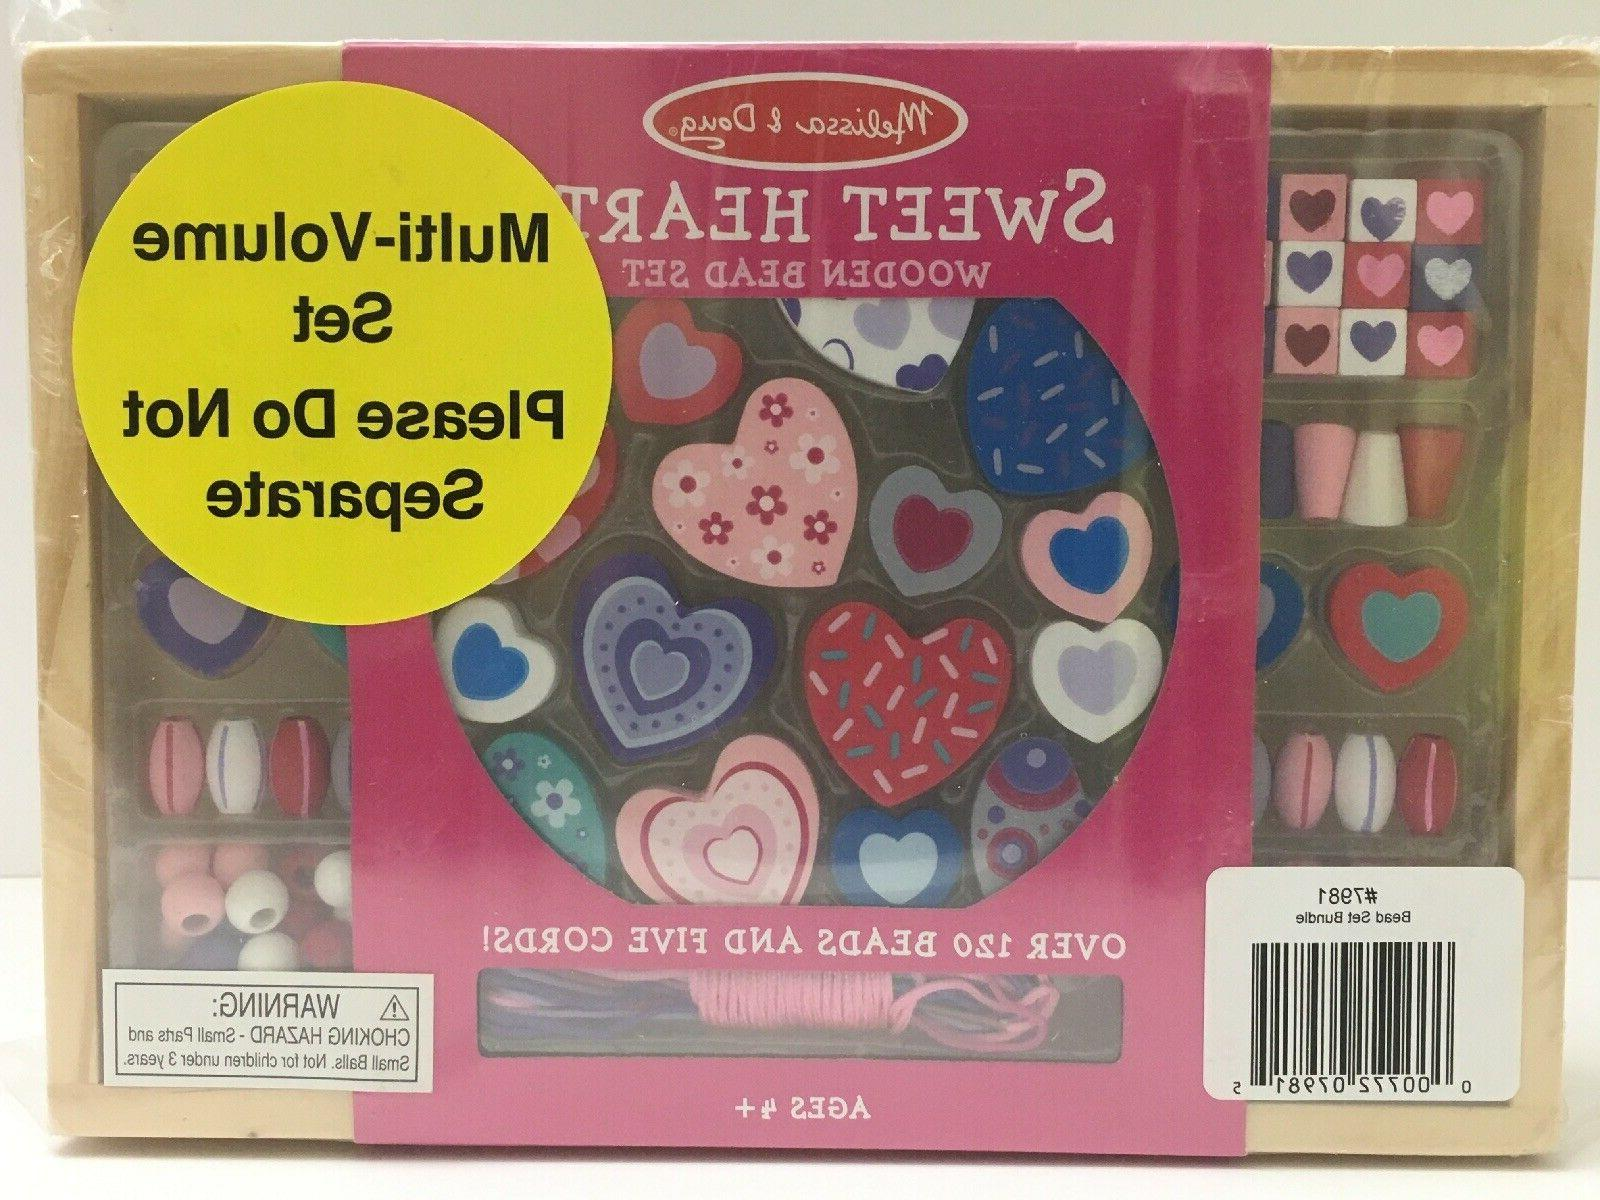 melissa and doug sweet heart butterfly wooden